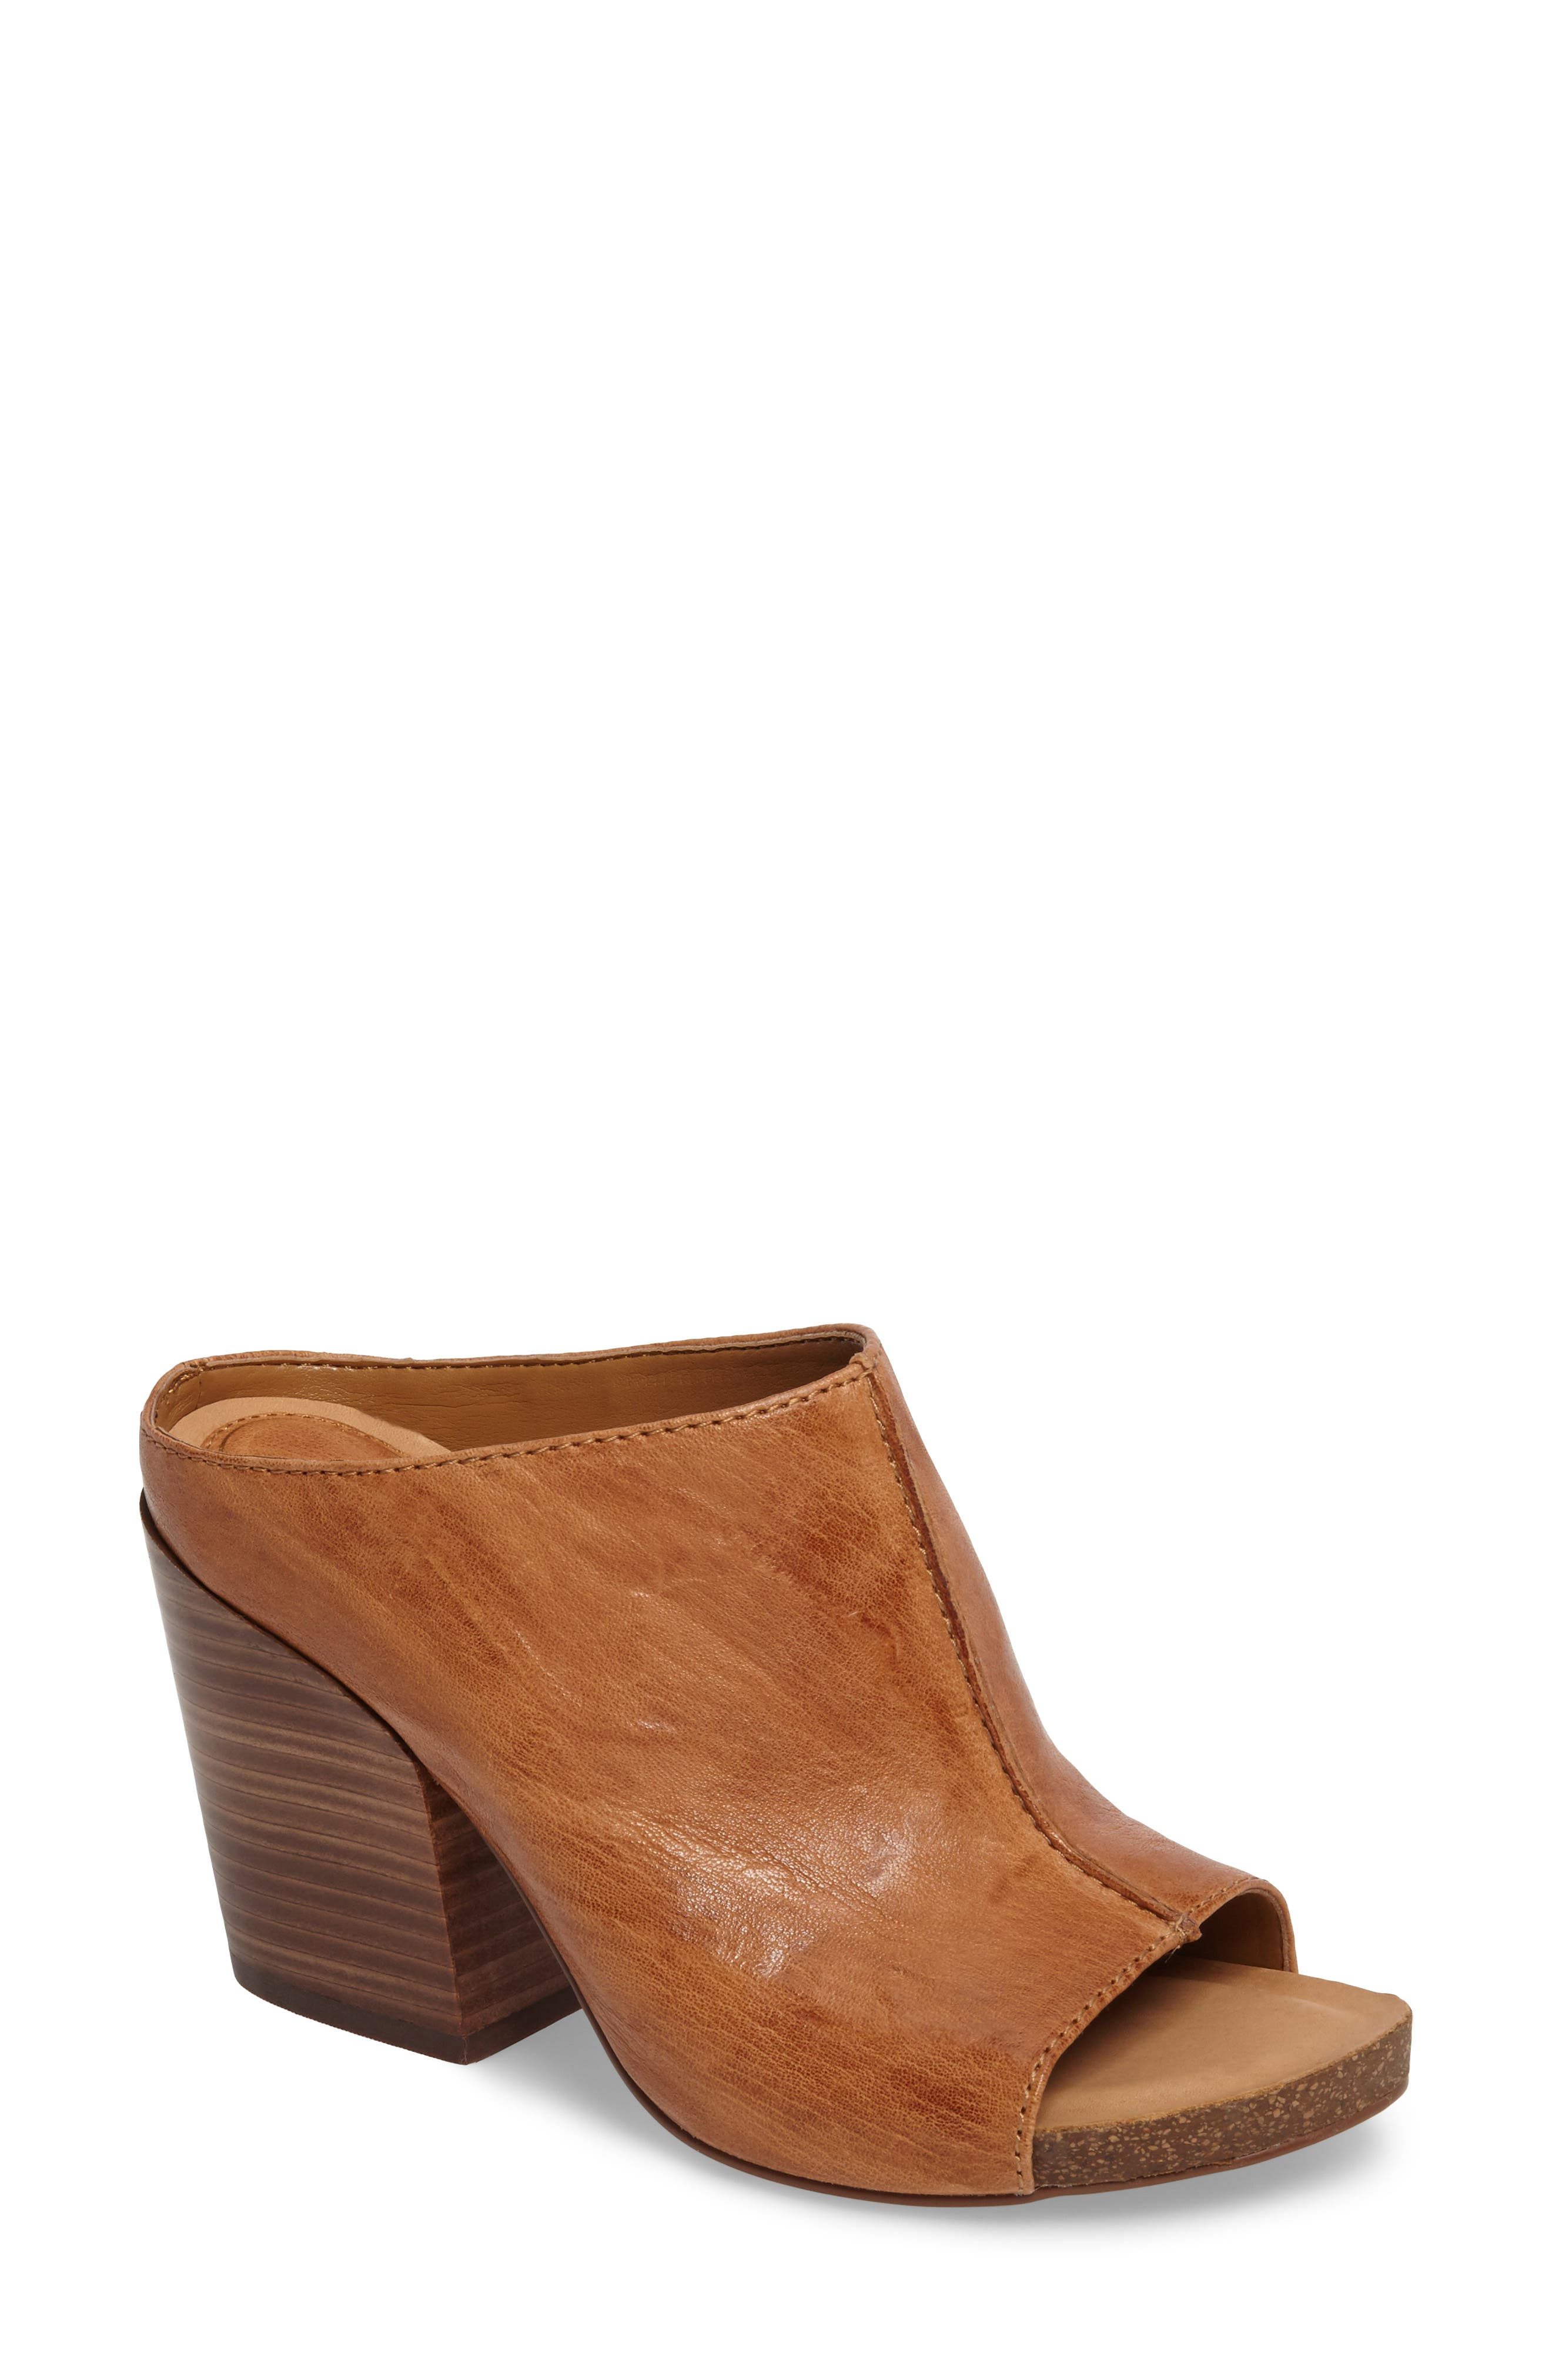 Isabella Open Toe Mule,                             Main thumbnail 1, color,                             Luggage Leather